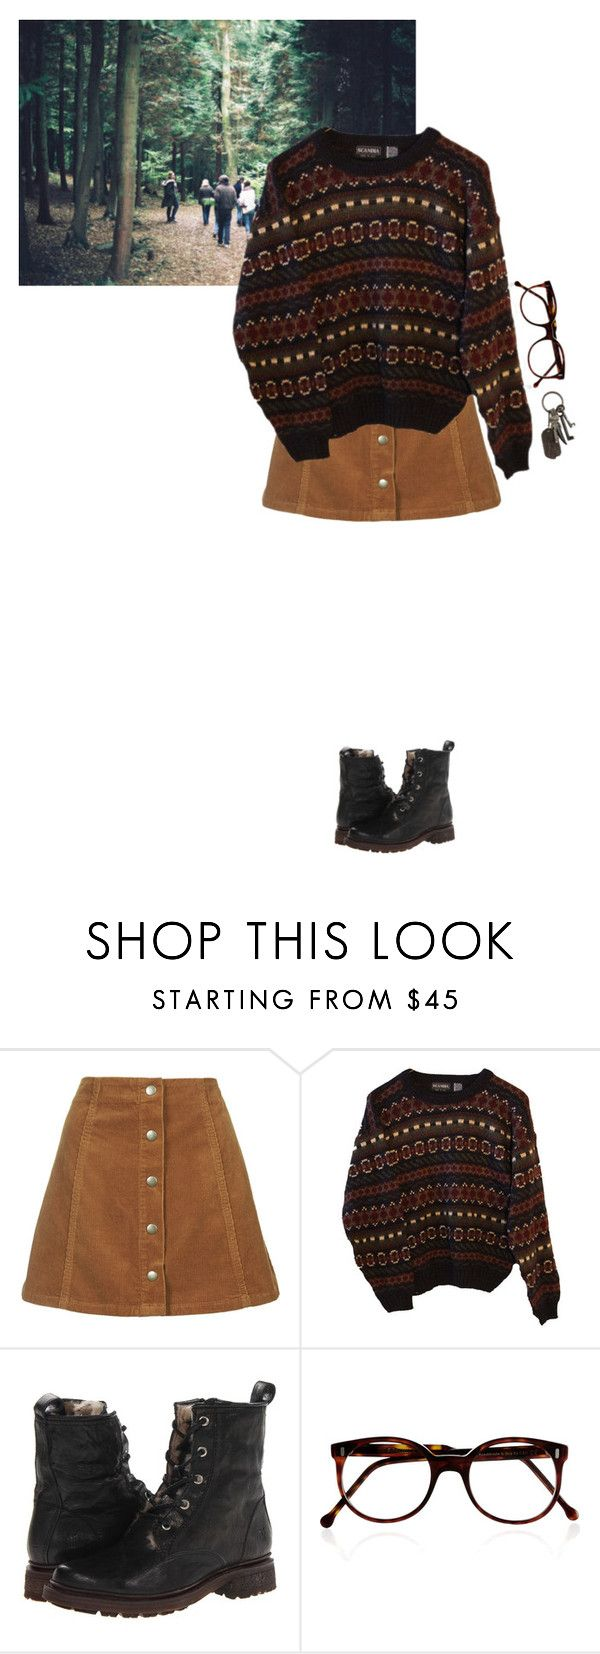 """""""21"""" by appleandrea ❤ liked on Polyvore featuring Topshop, INDIE HAIR, Frye, Cutler and Gross and AllSaints"""